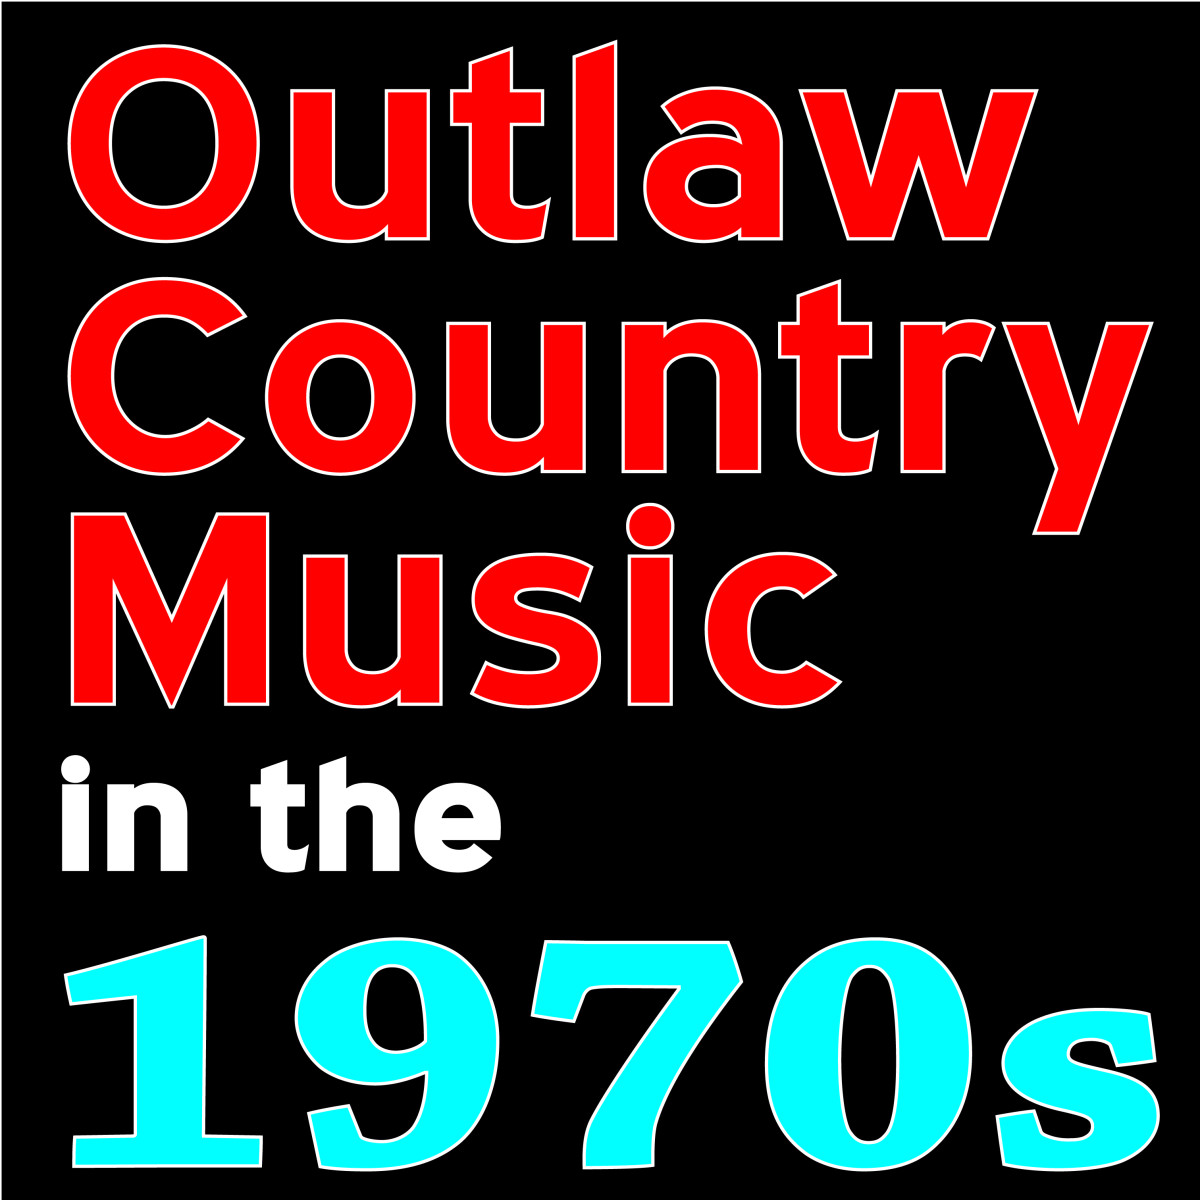 Outlaw country music inspired many genres. Read on to learn more about this genre.